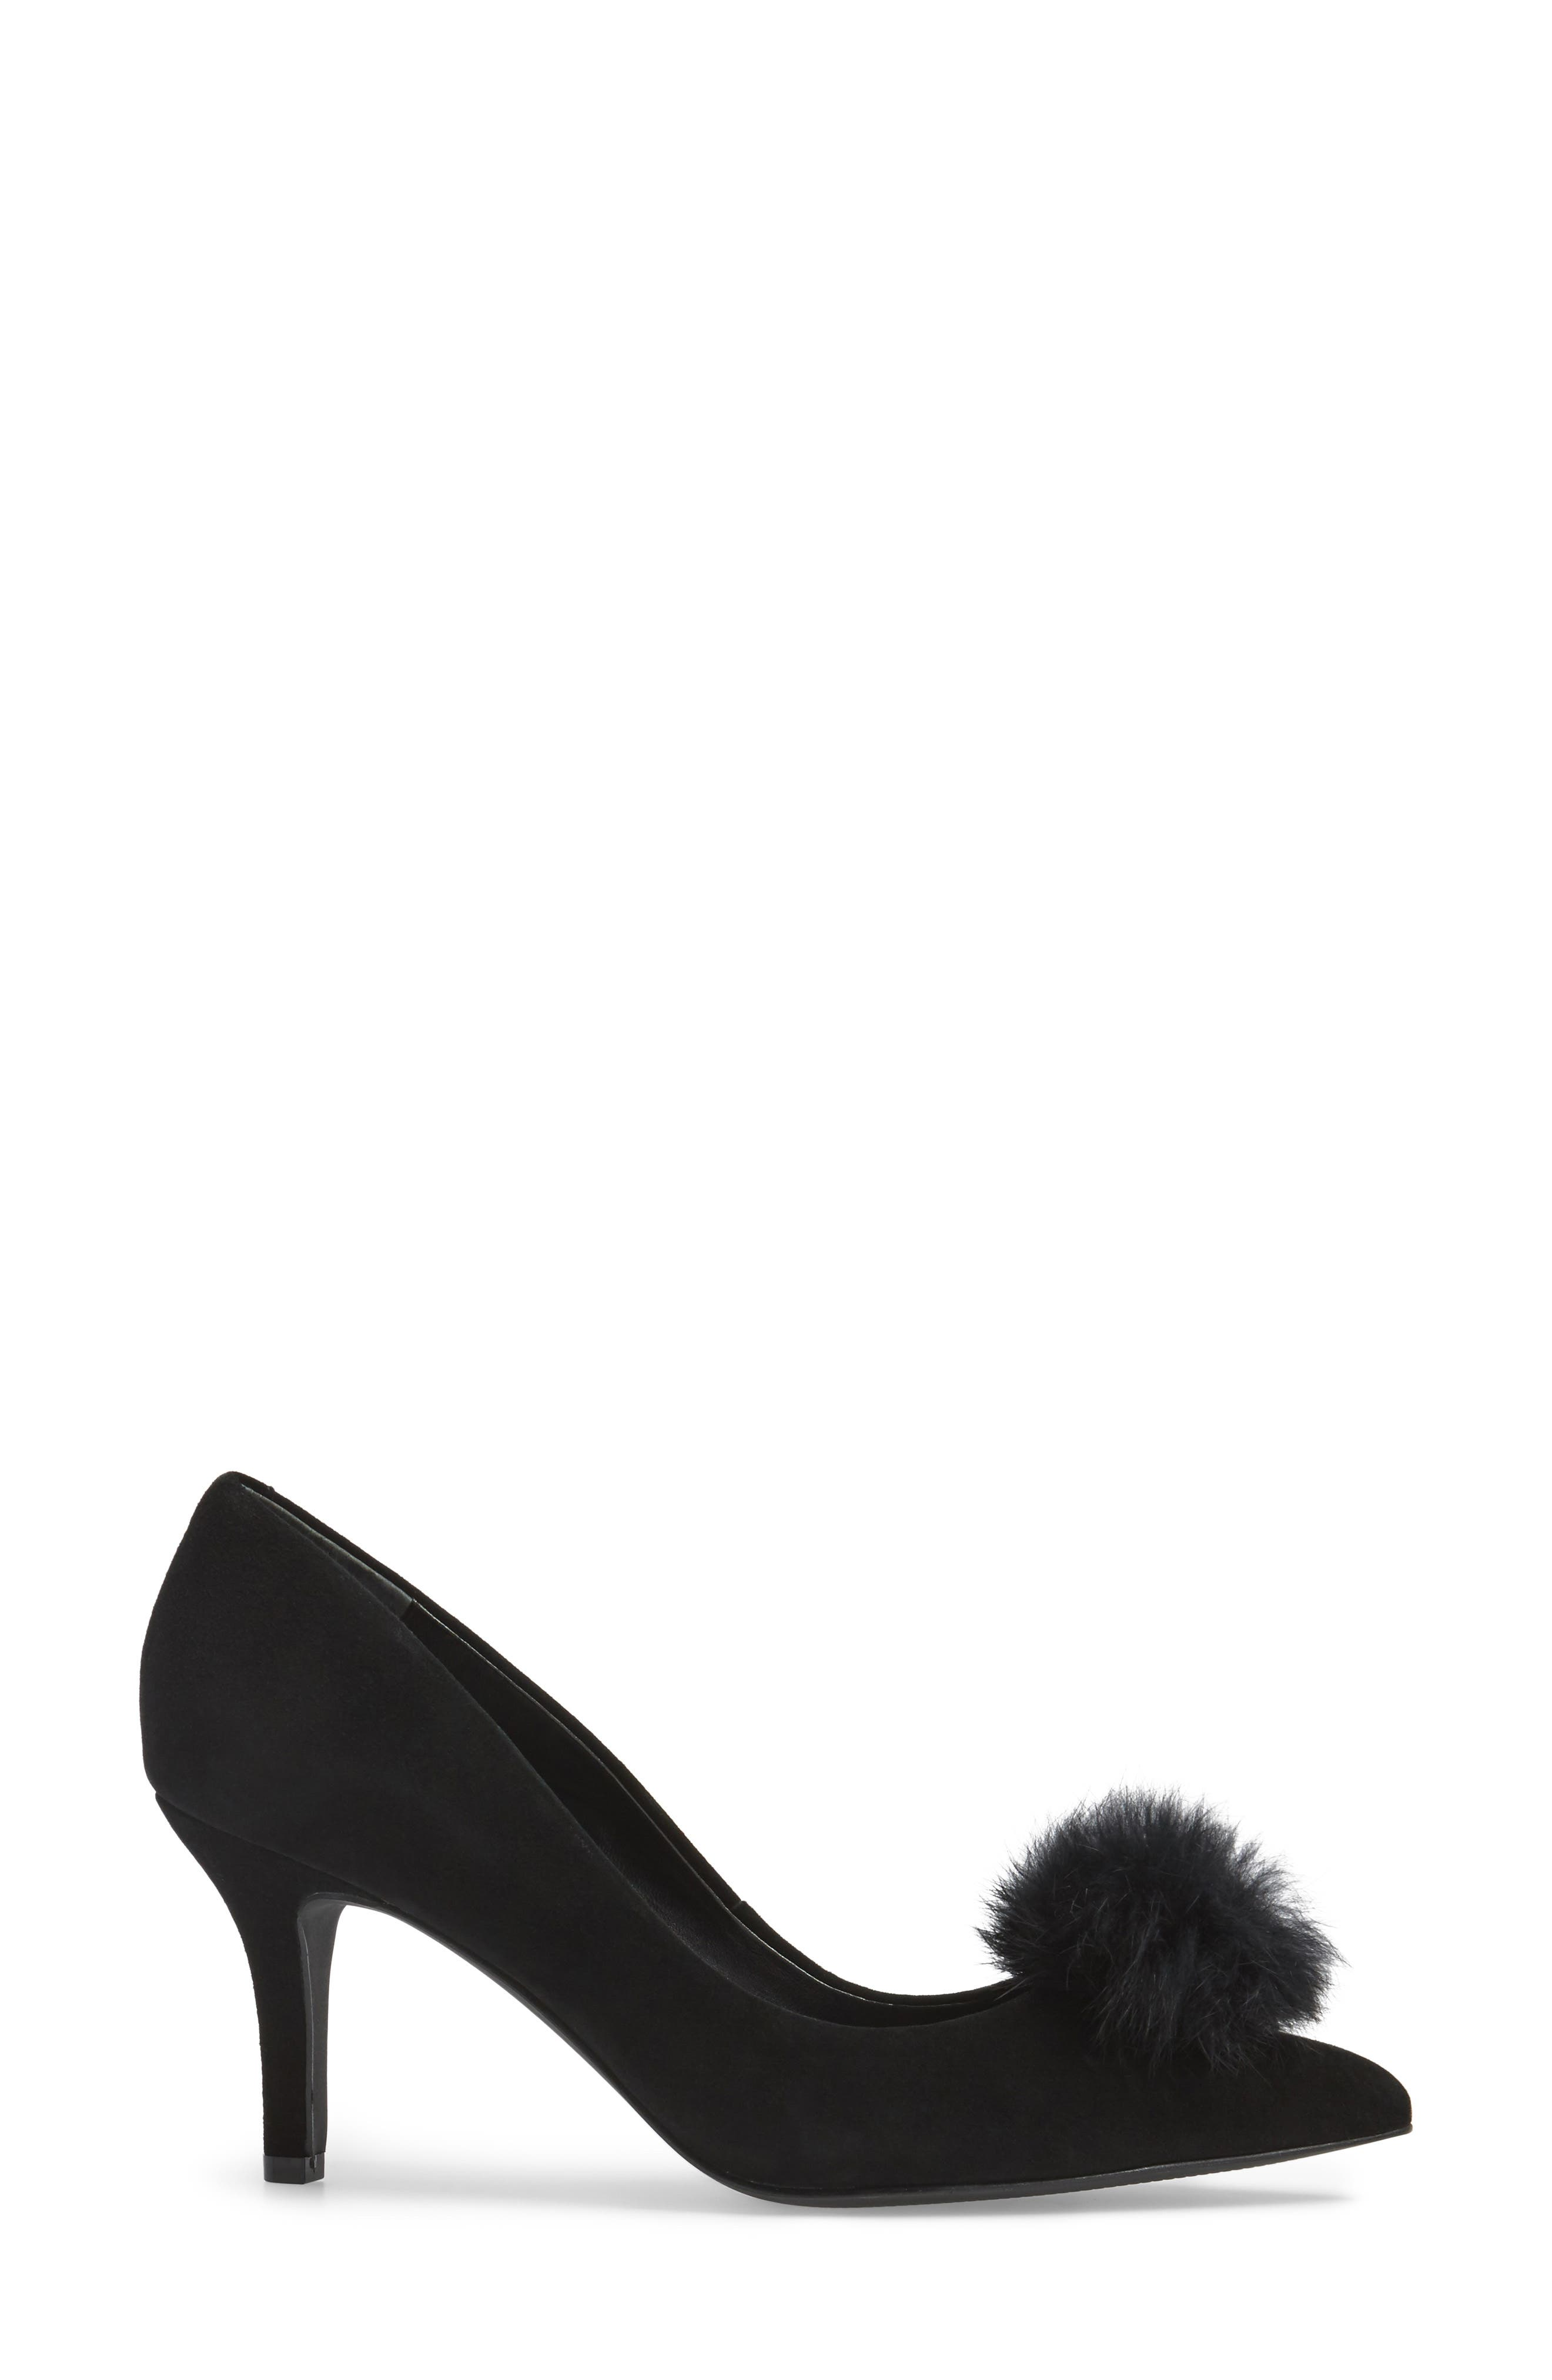 Sadie Genuine Rabbit Fur Pom Pump,                             Alternate thumbnail 3, color,                             001